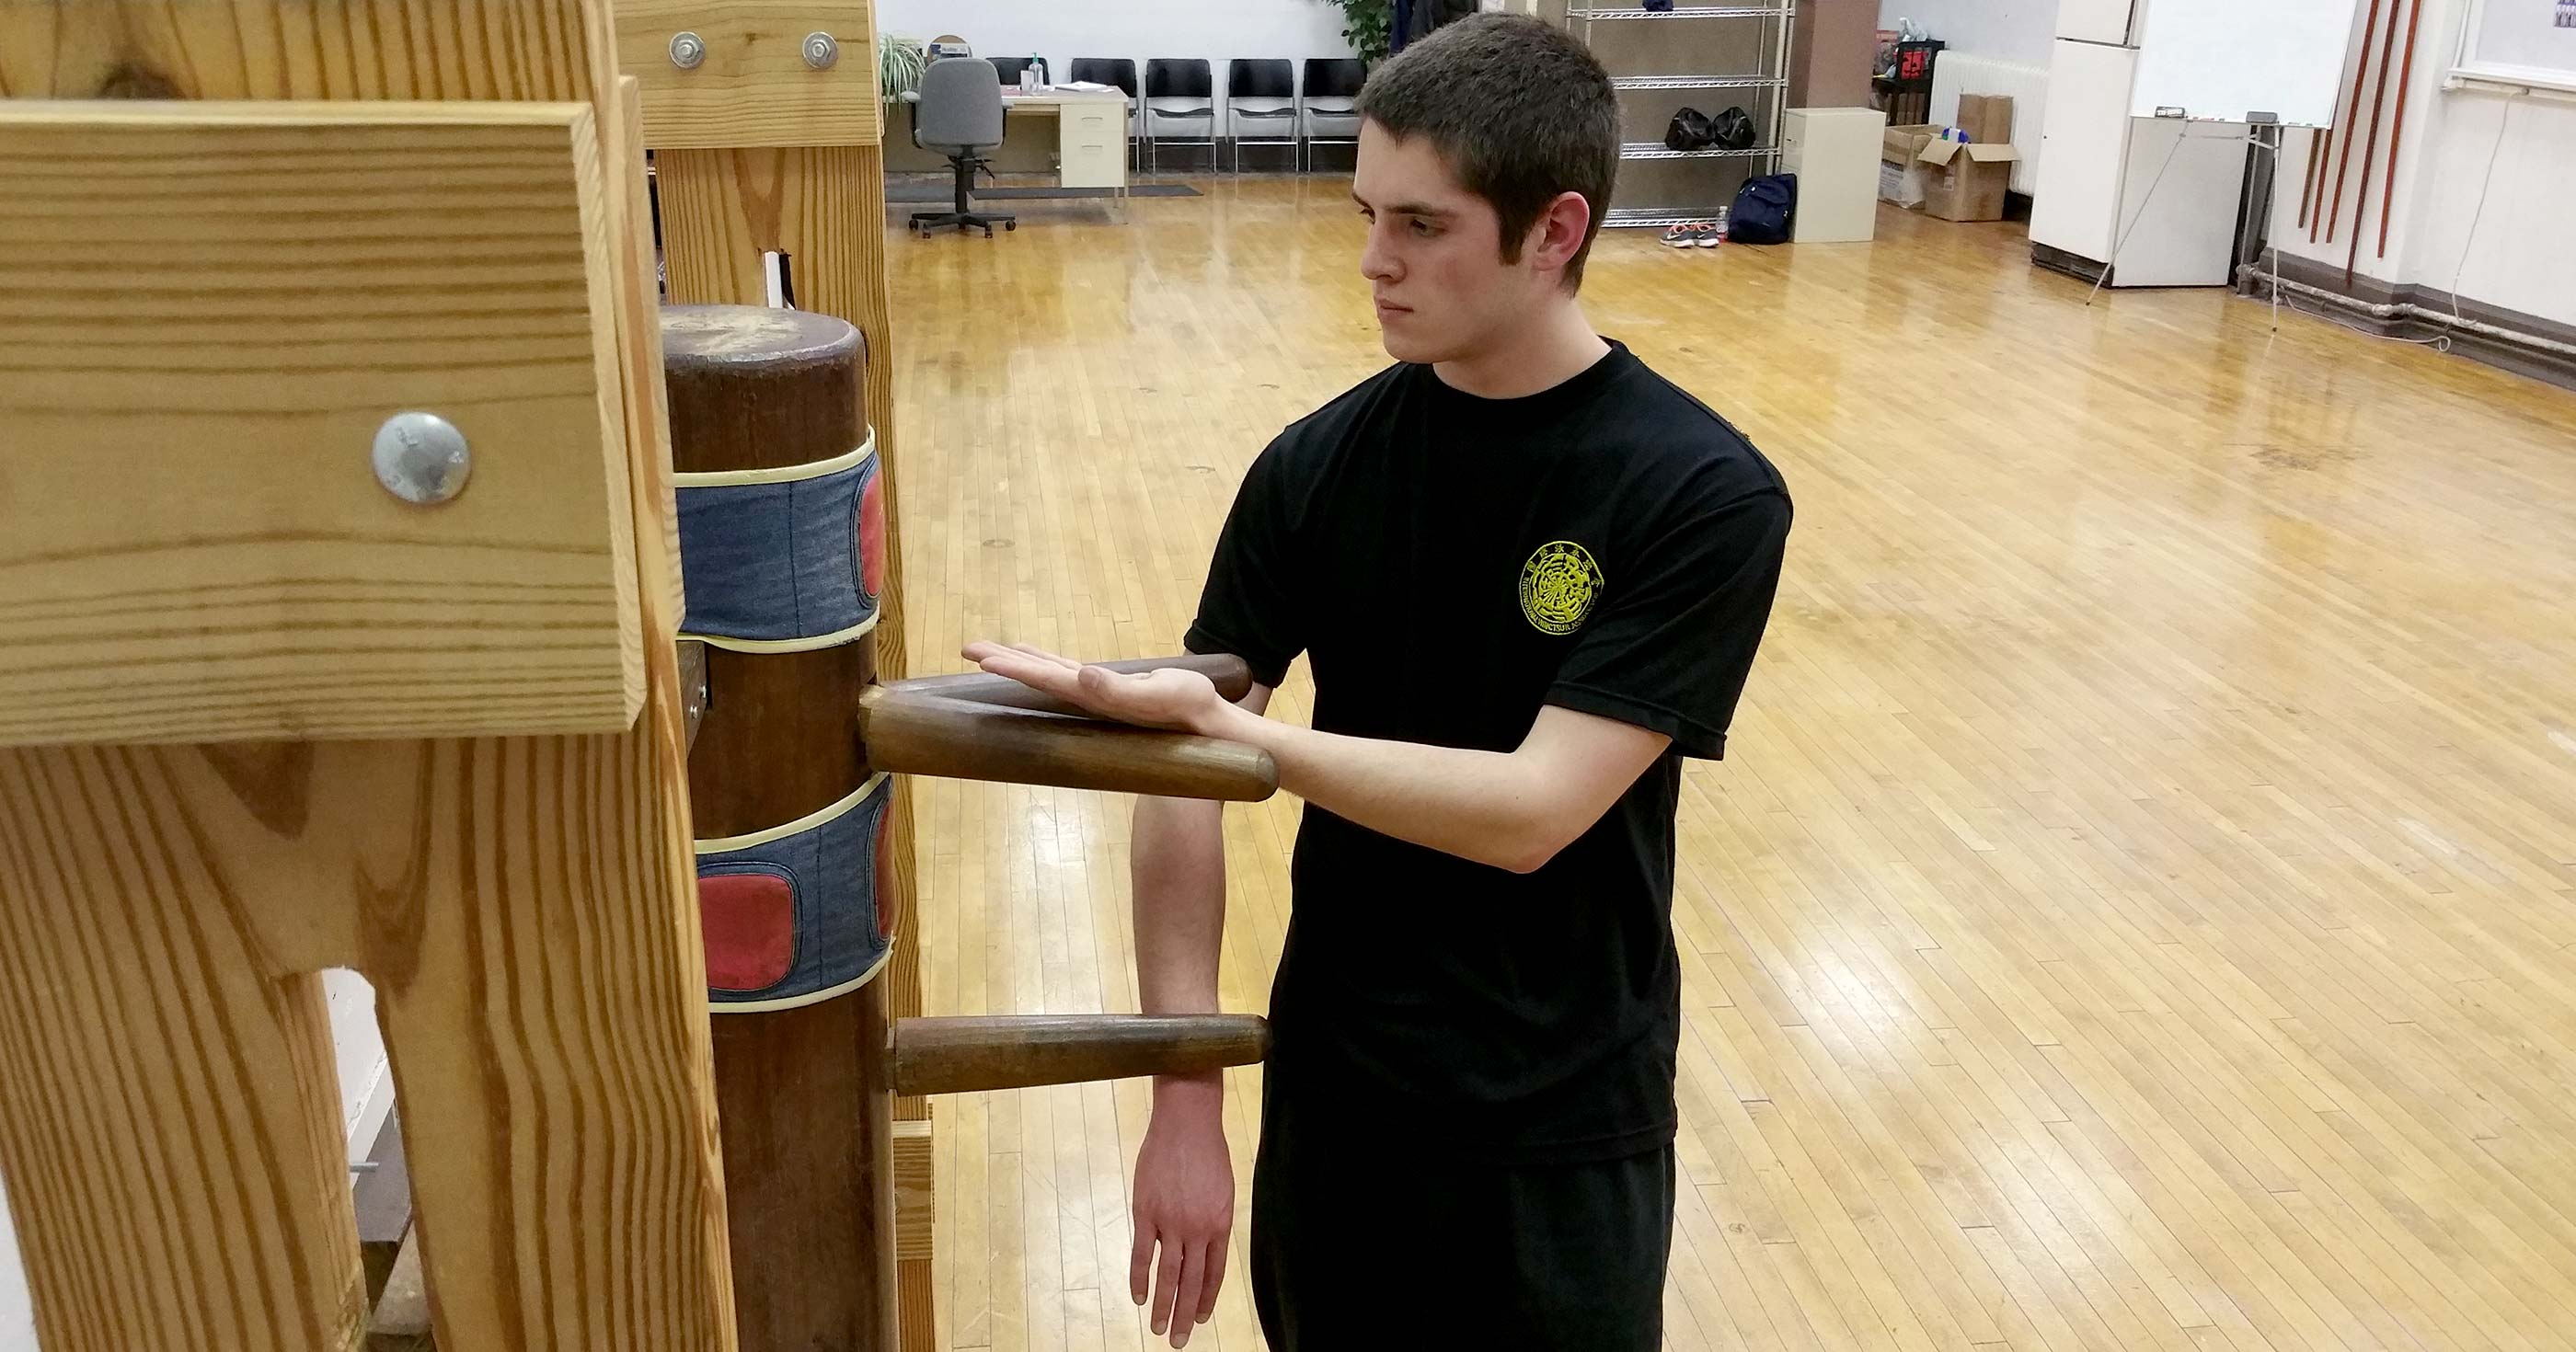 Photo: Sifu Hunter Watts training on the Wing Tsun kung fu wooden dummy